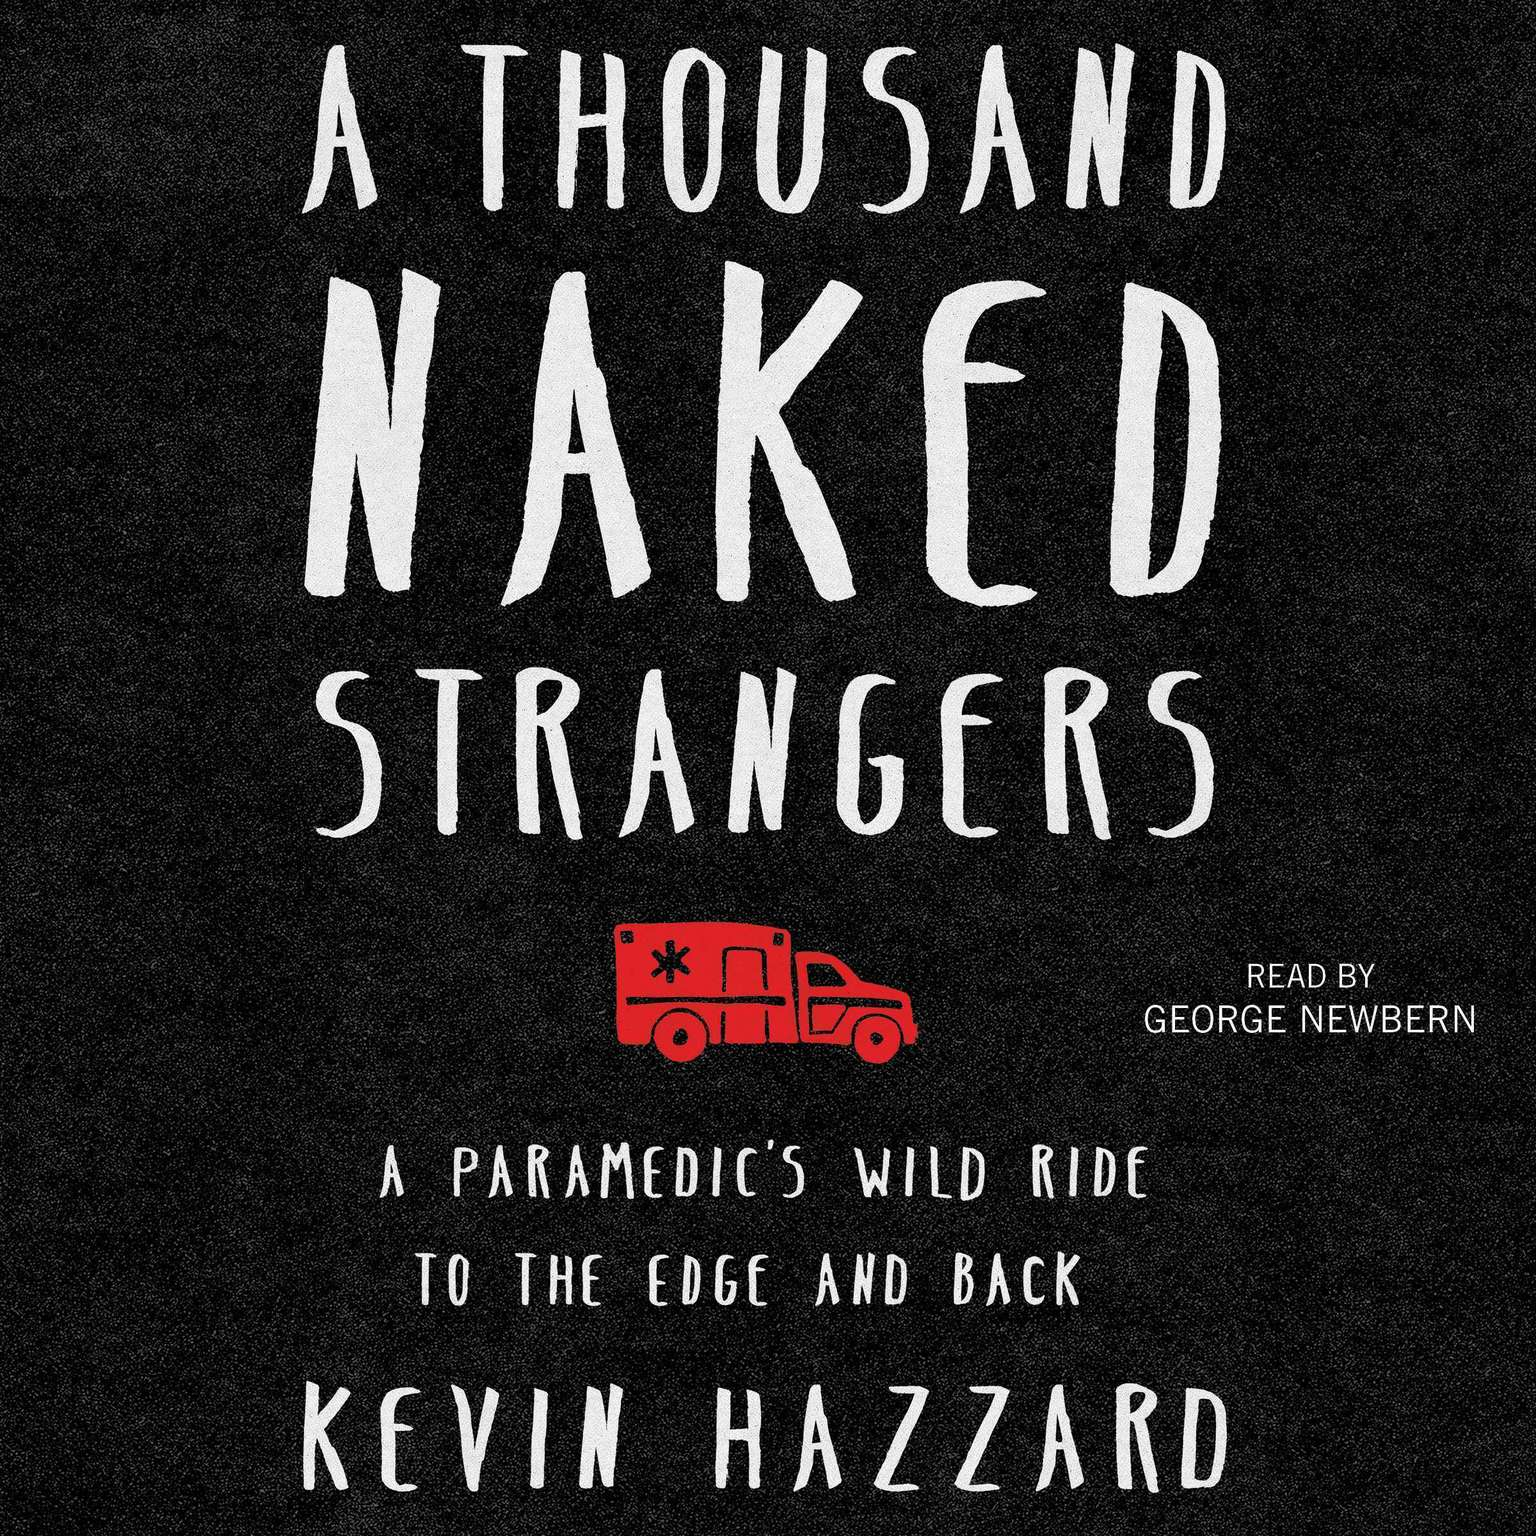 A Thousand Naked Strangers: A Paramedics Wild Ride to the Edge and Back Audiobook, by Kevin Hazzard